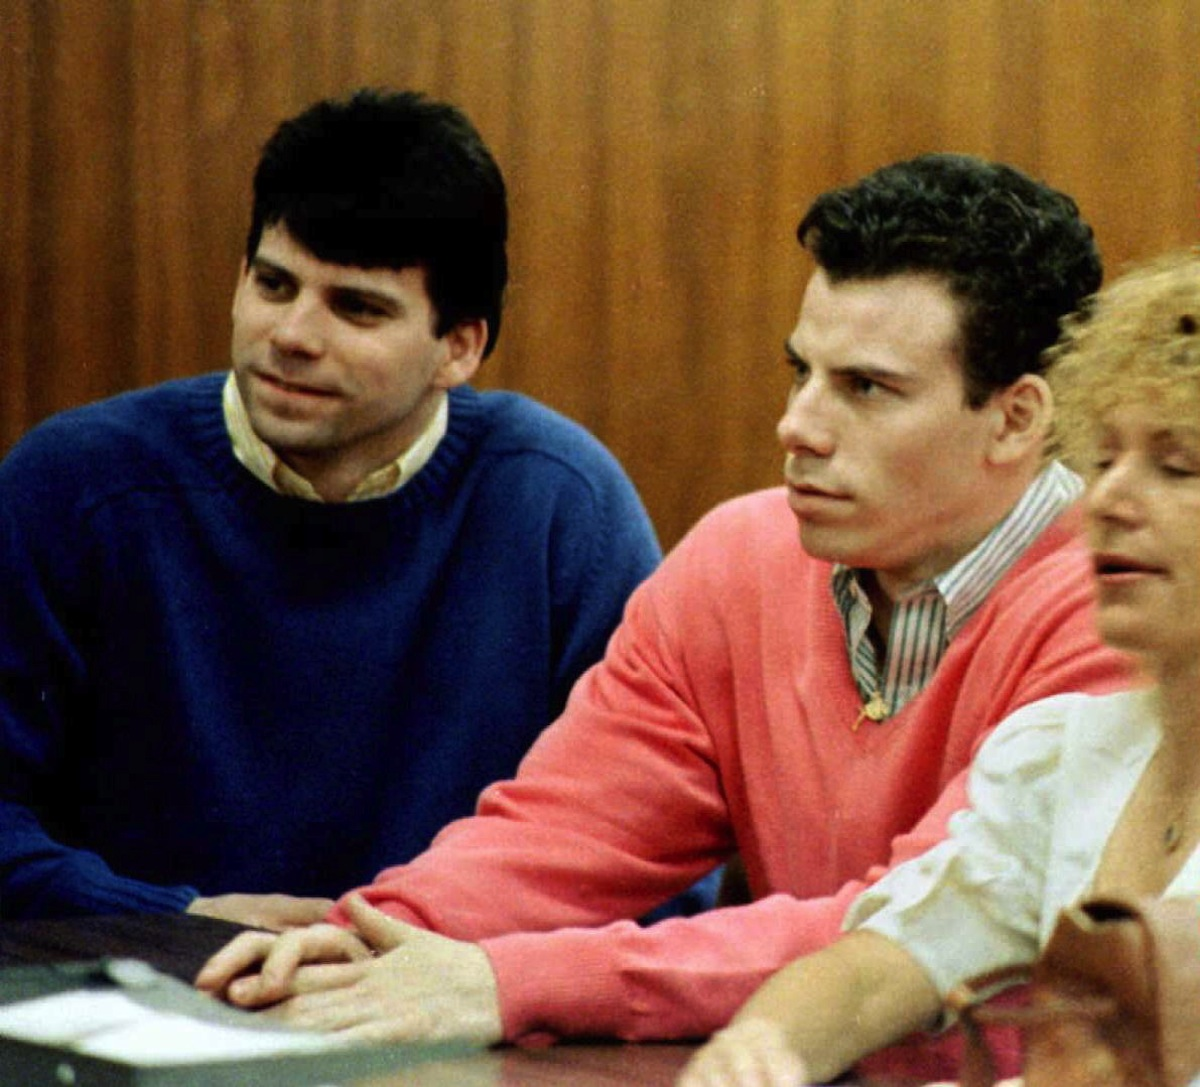 Double murder defendants Erik (R) and Lyle Menendez (L) during a court appearance in Los Angeles, Calif., in 1992